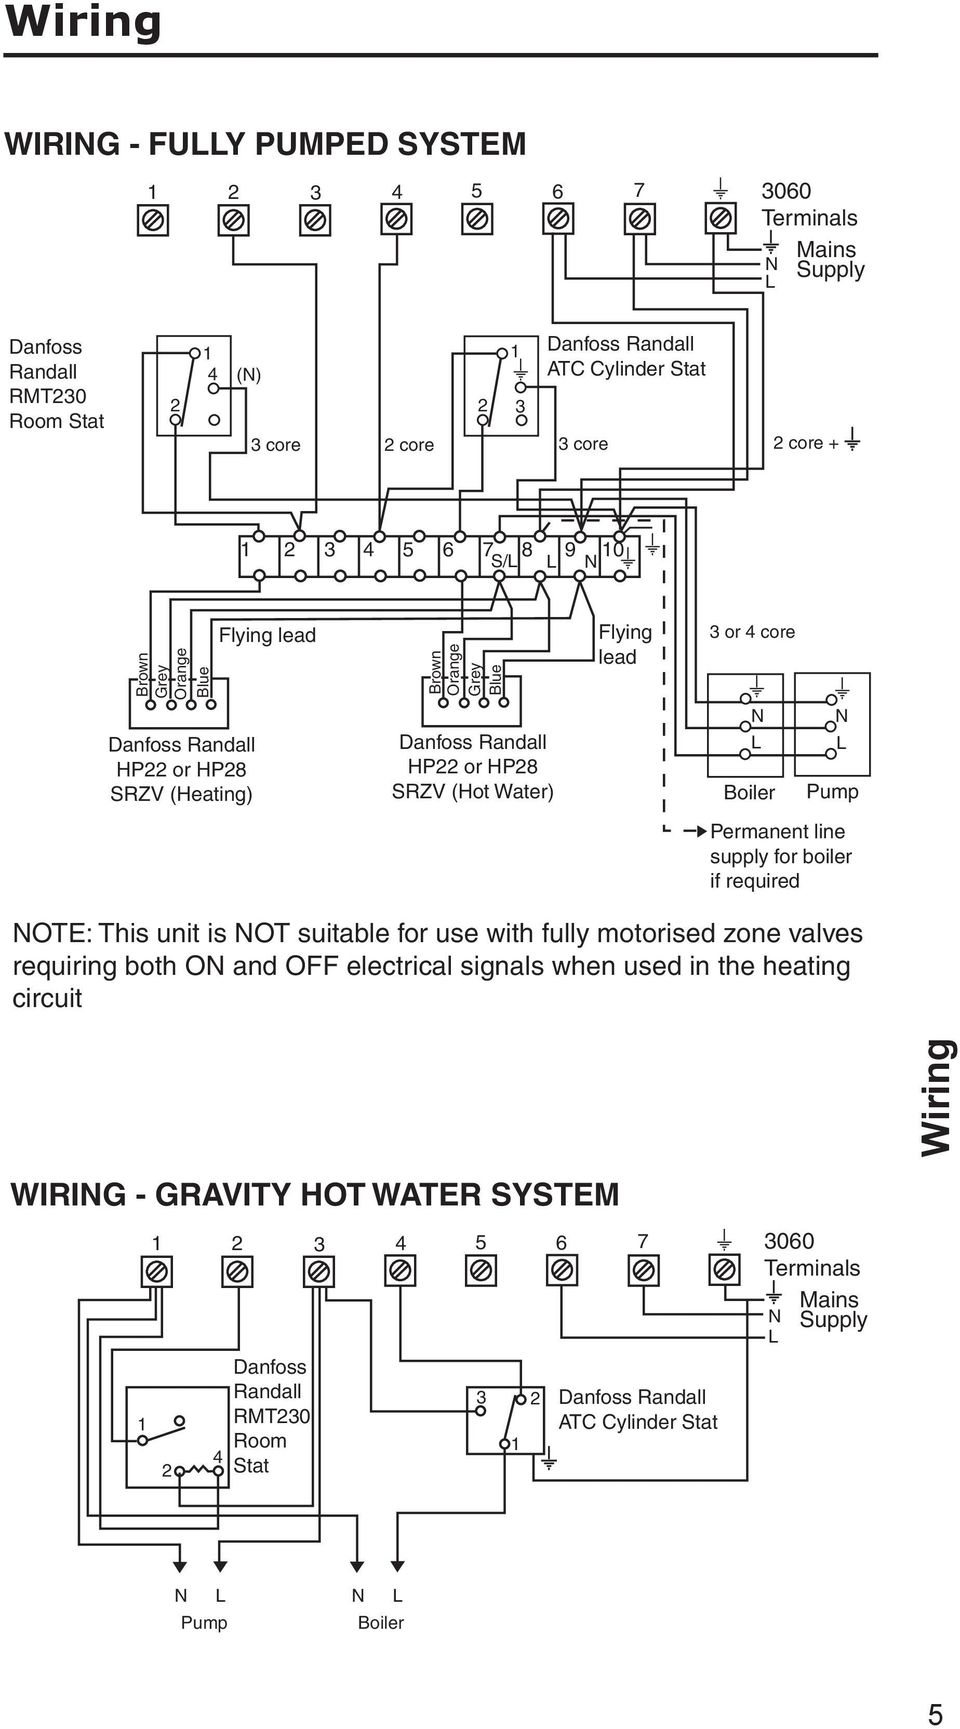 Electro Mechanical Programmer For Controlling Heating Hot Water Controls Danfoss Wiring Diagram L Boiler N Pump Permanent Line Supply If Required Note This Unit Is